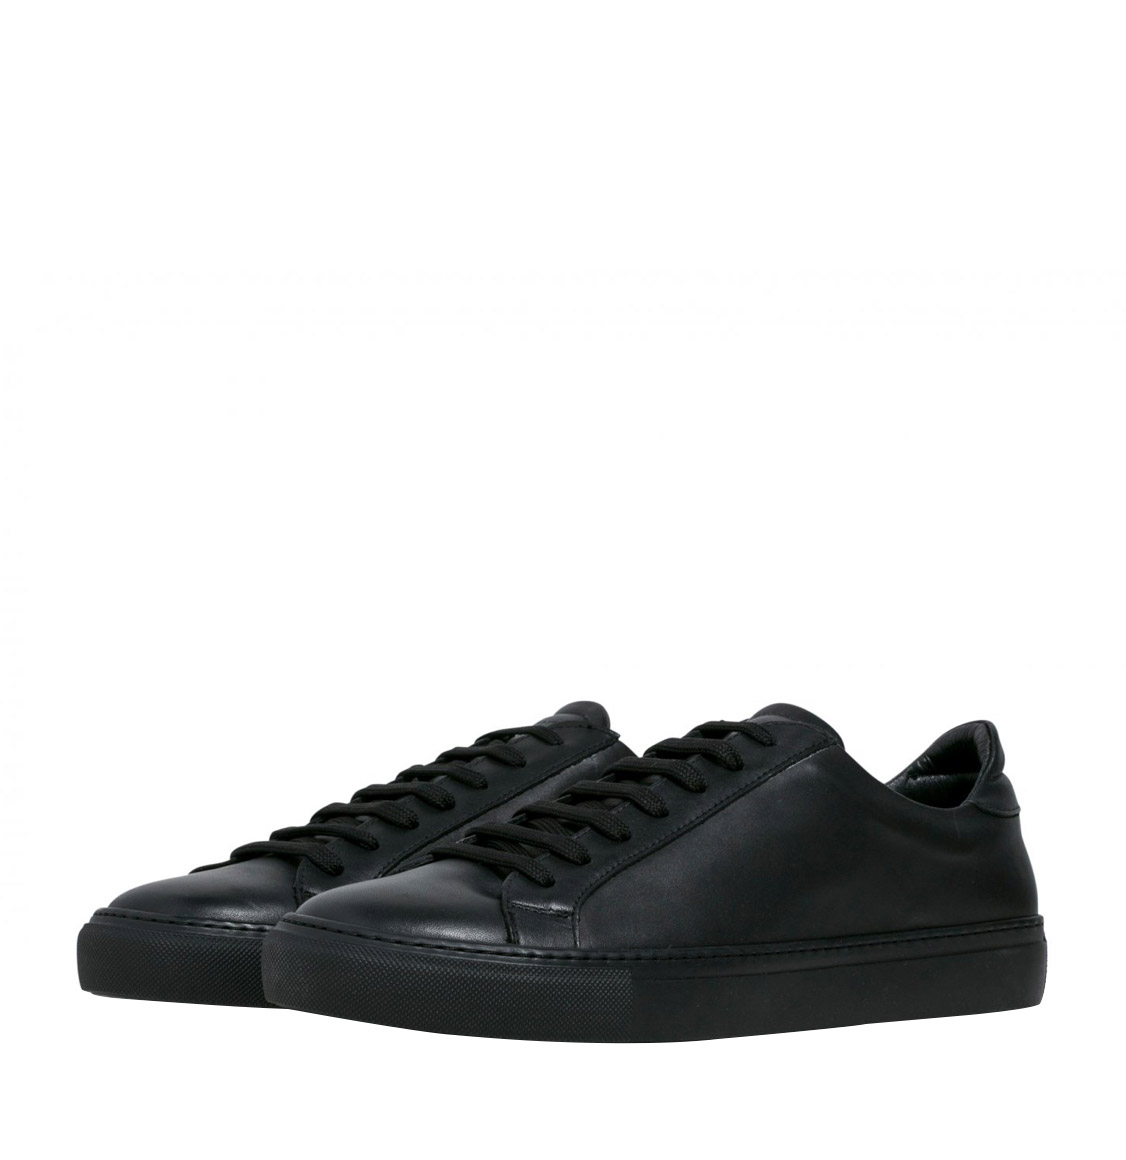 Garment Project Type Black | Black Leather Sneakers